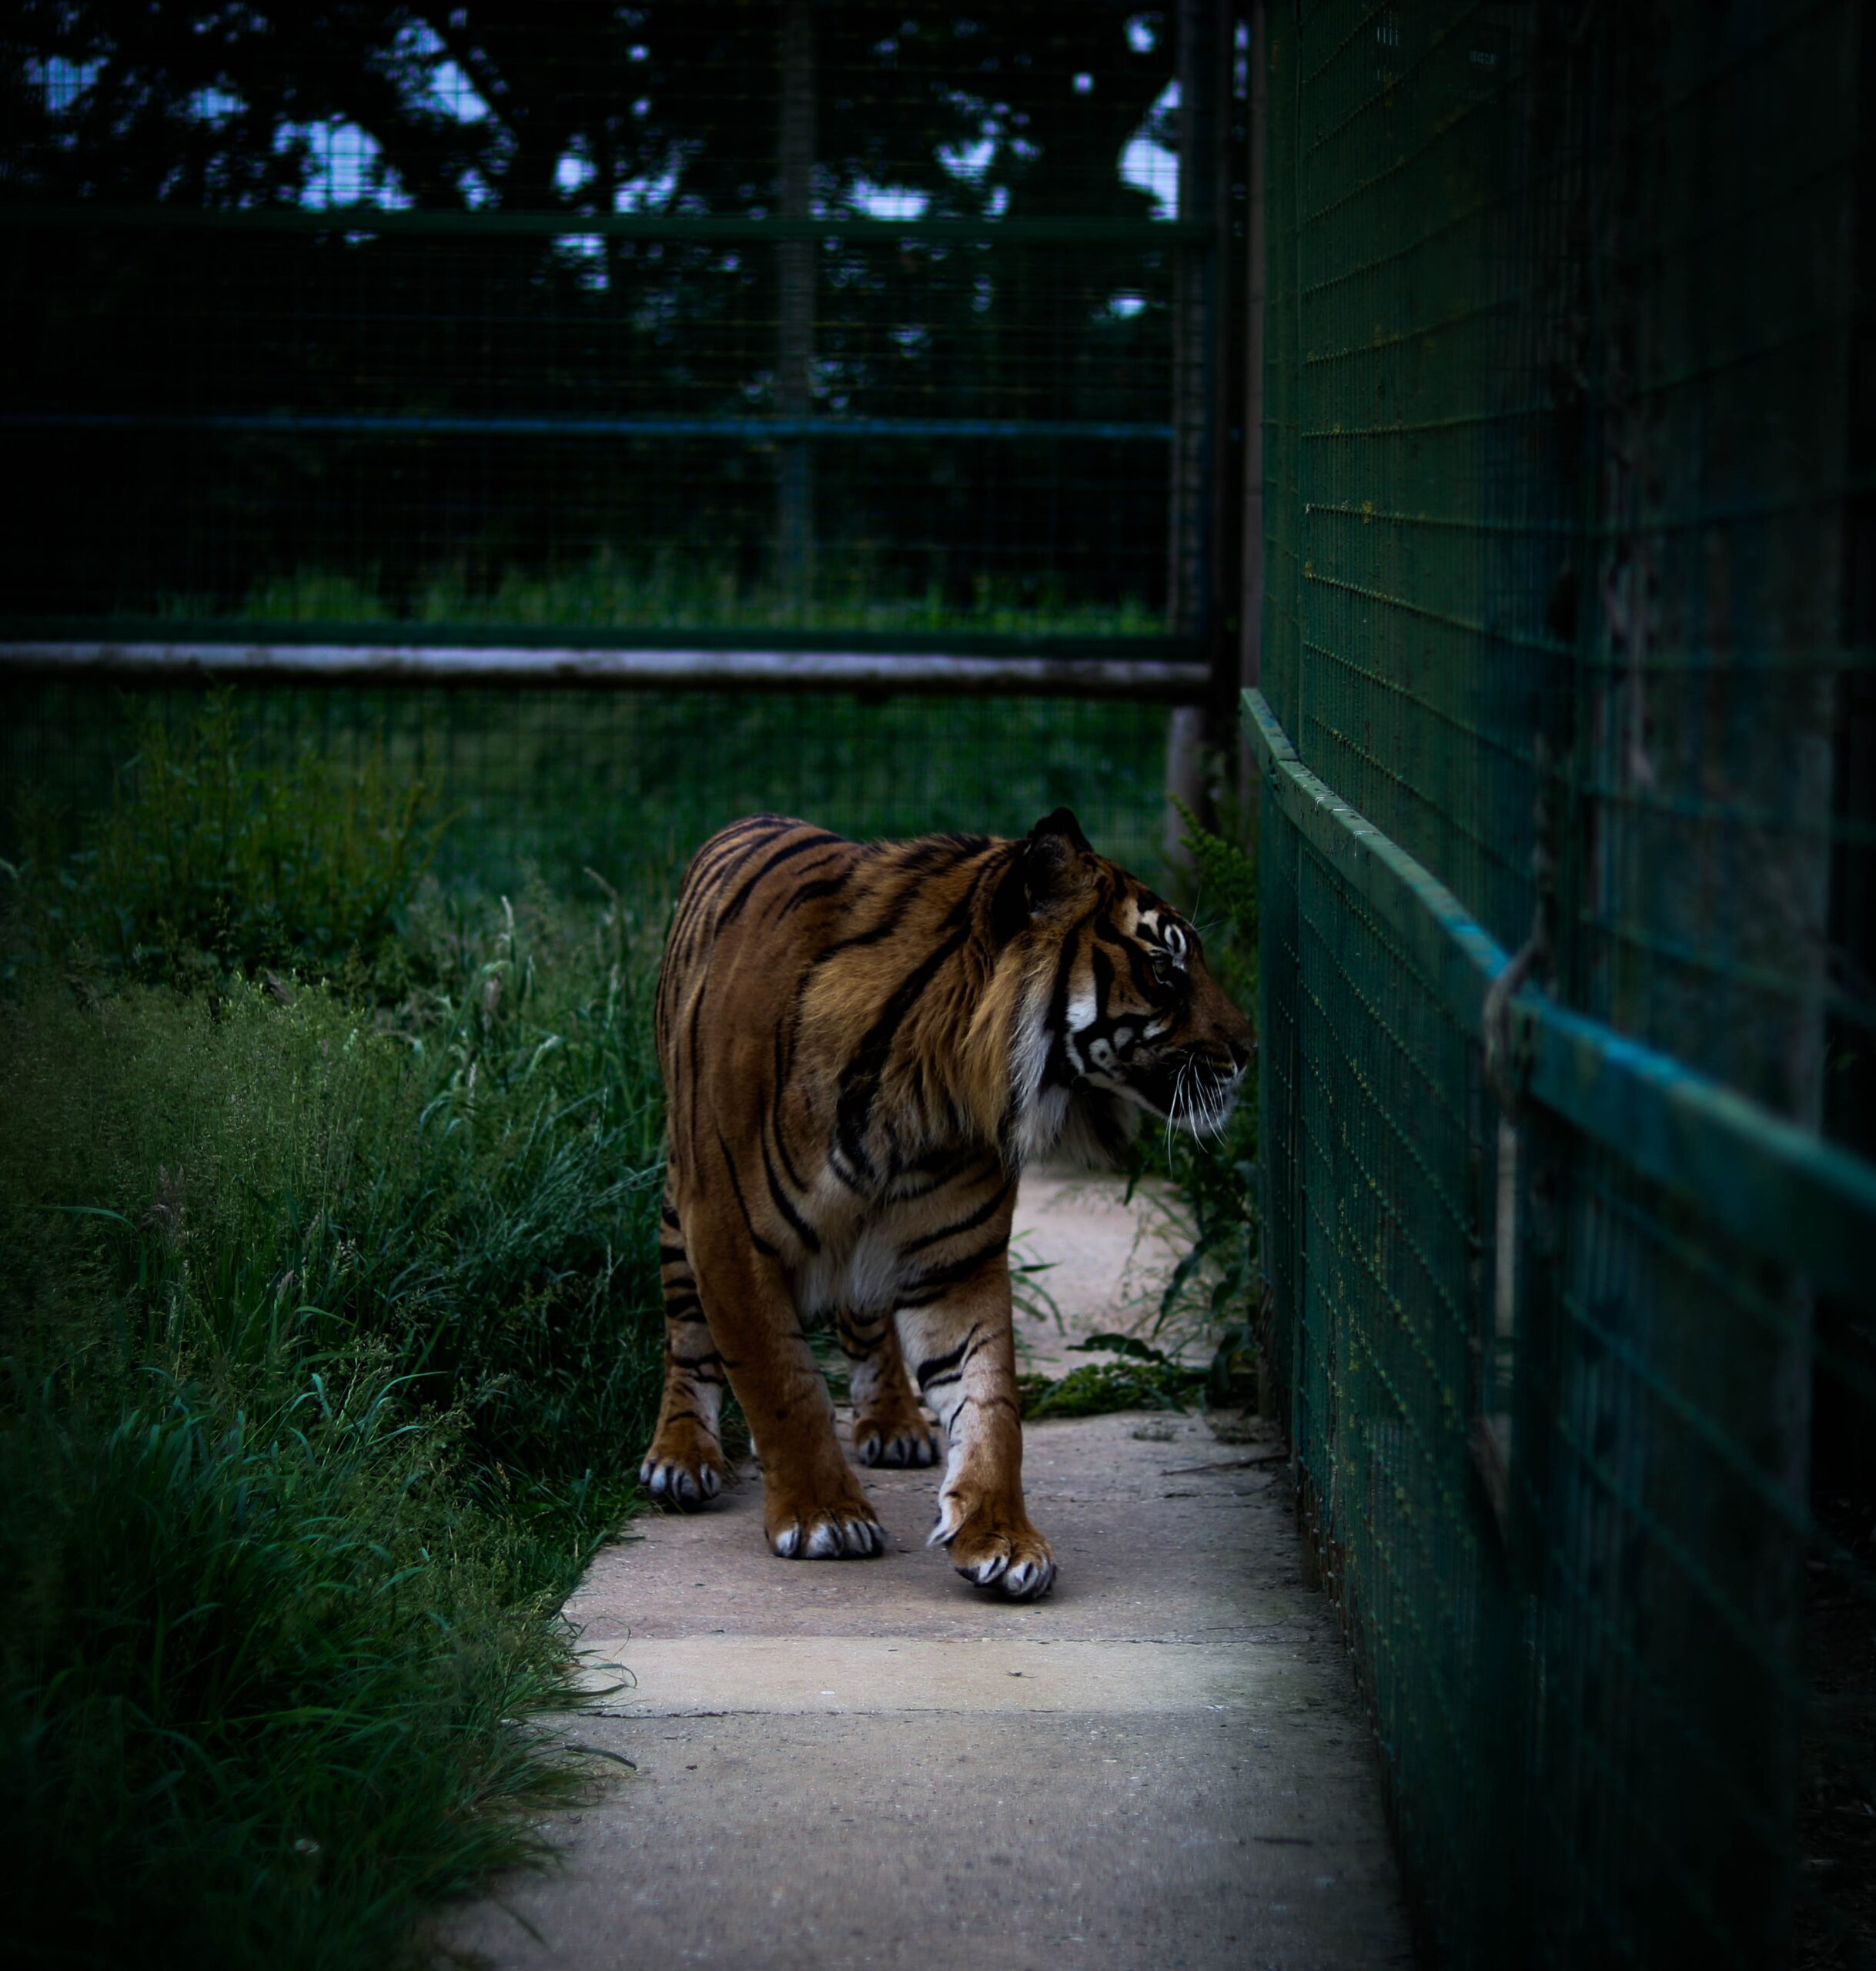 jamie-turner-Bengal Tiger pacing the cage-unsplash